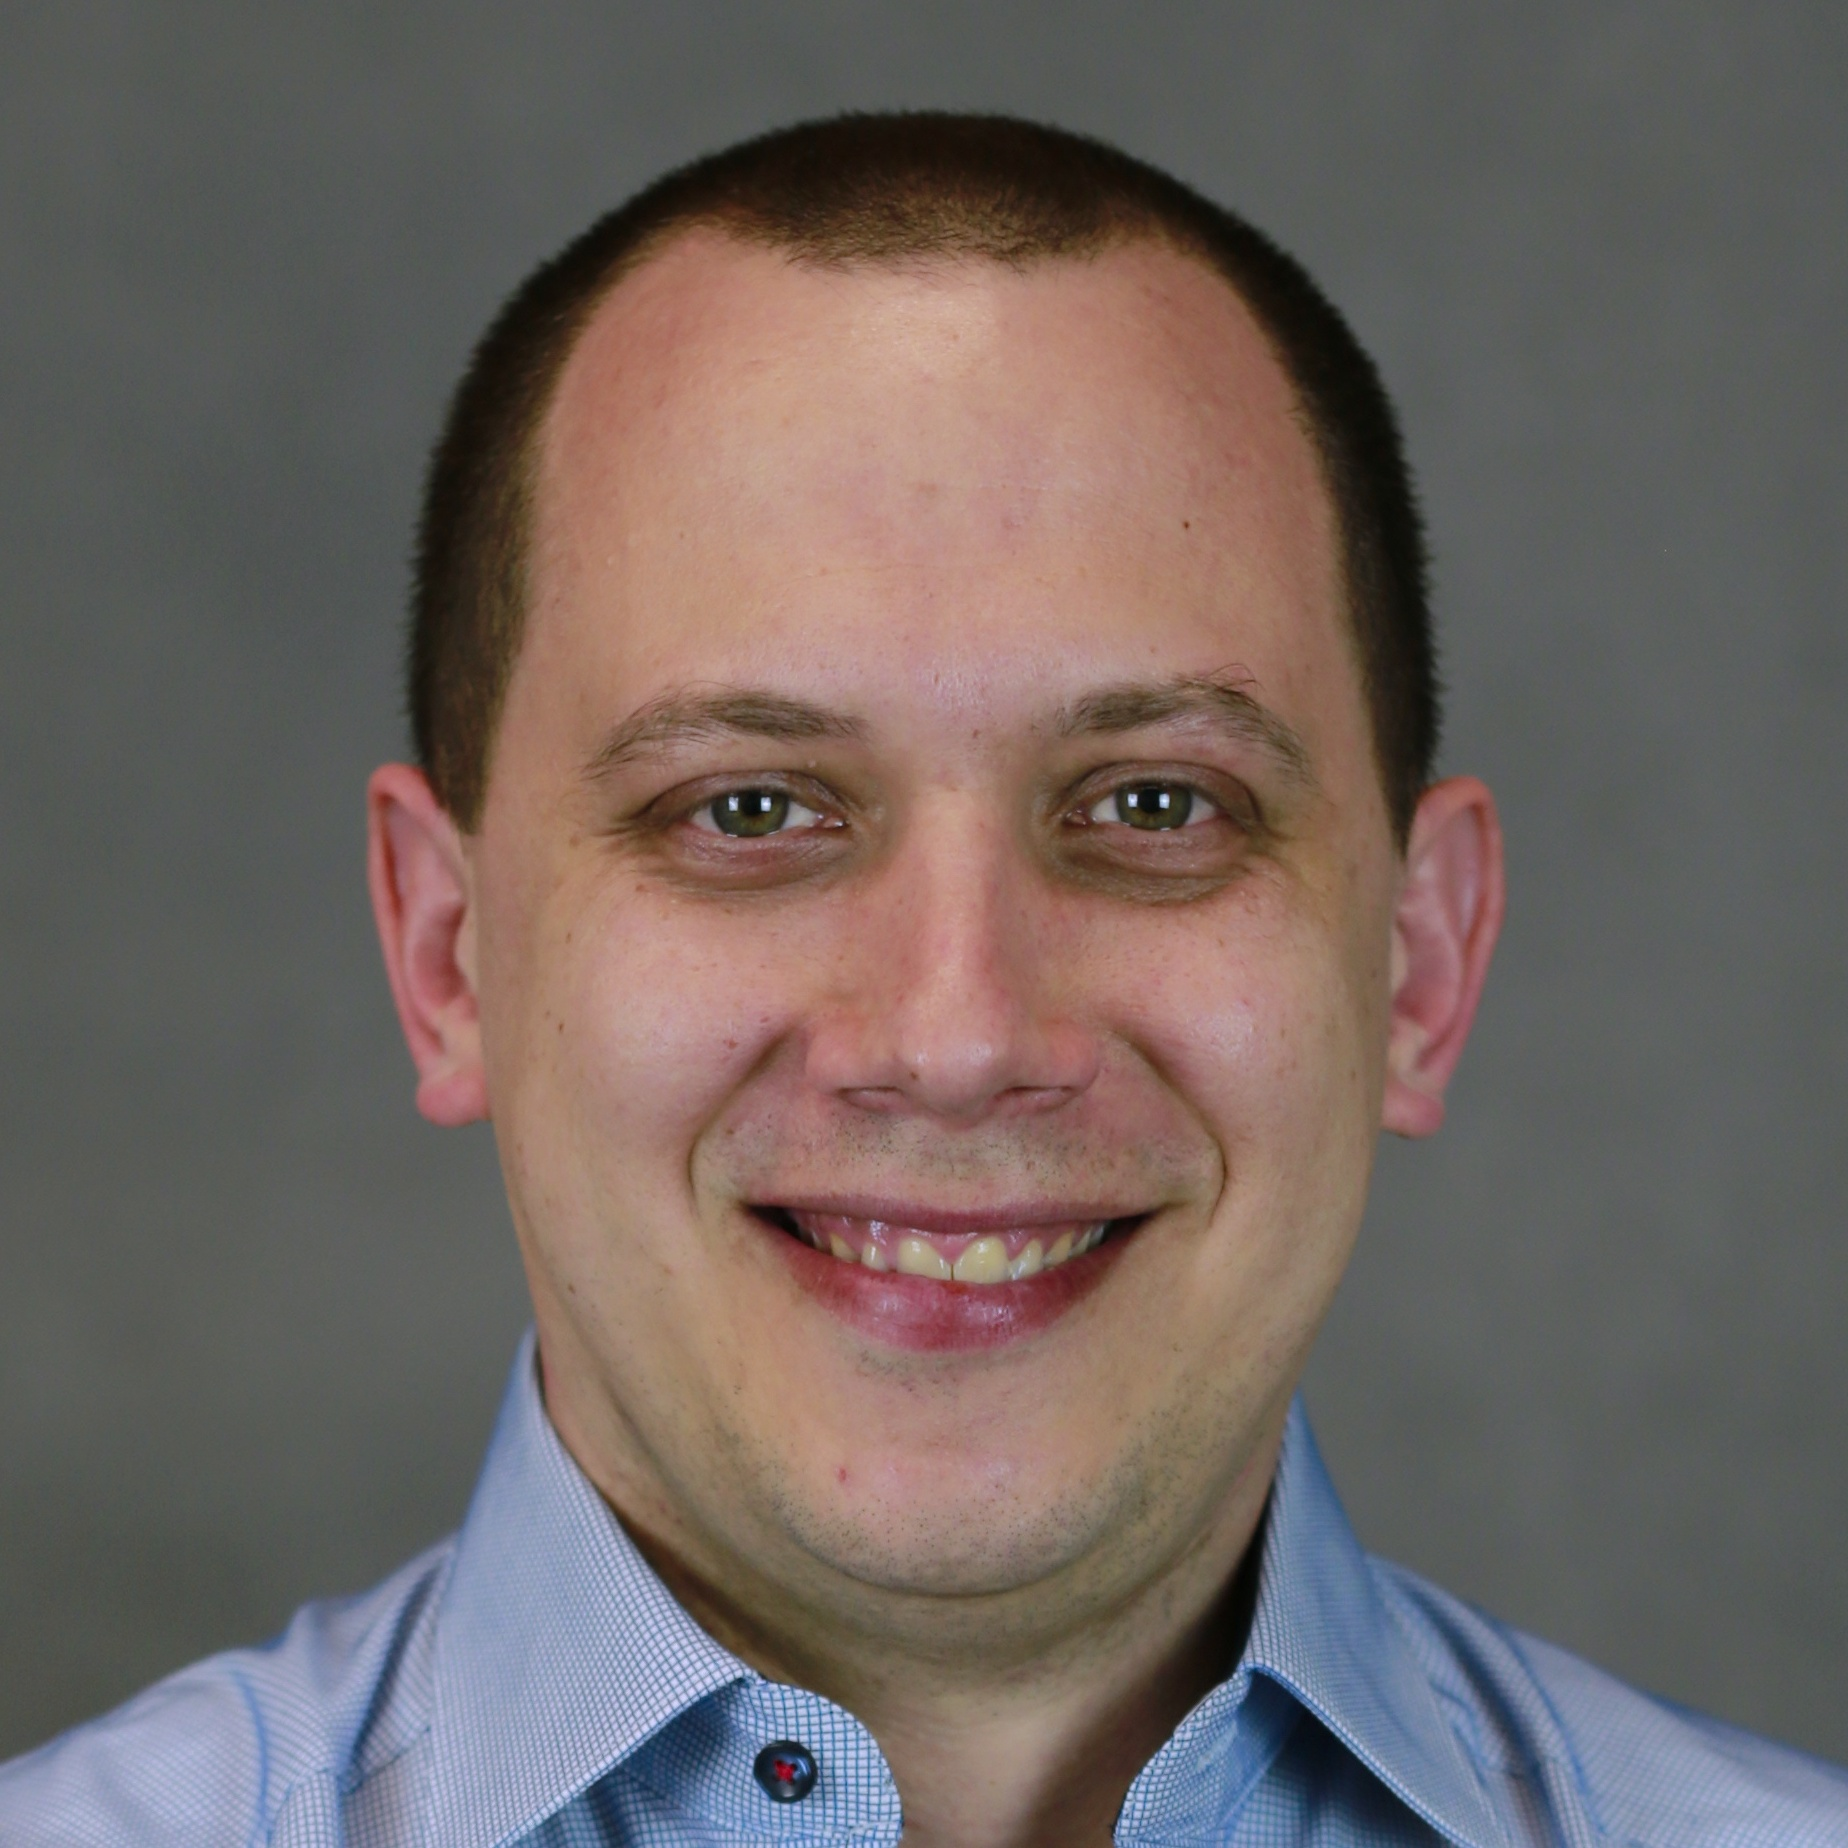 Pavel Barták, Product Manager